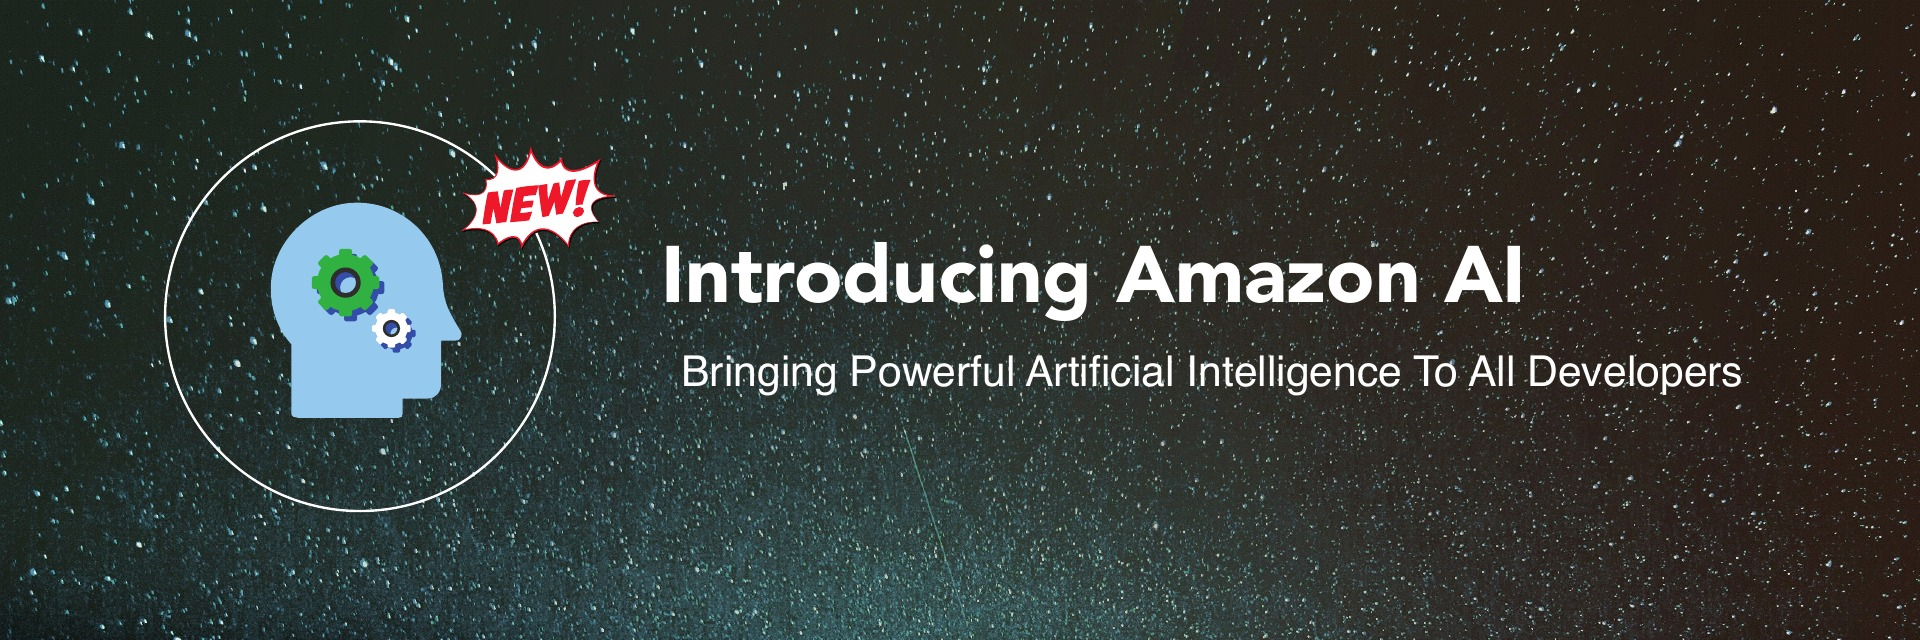 Amazon Announces Three New AI Services